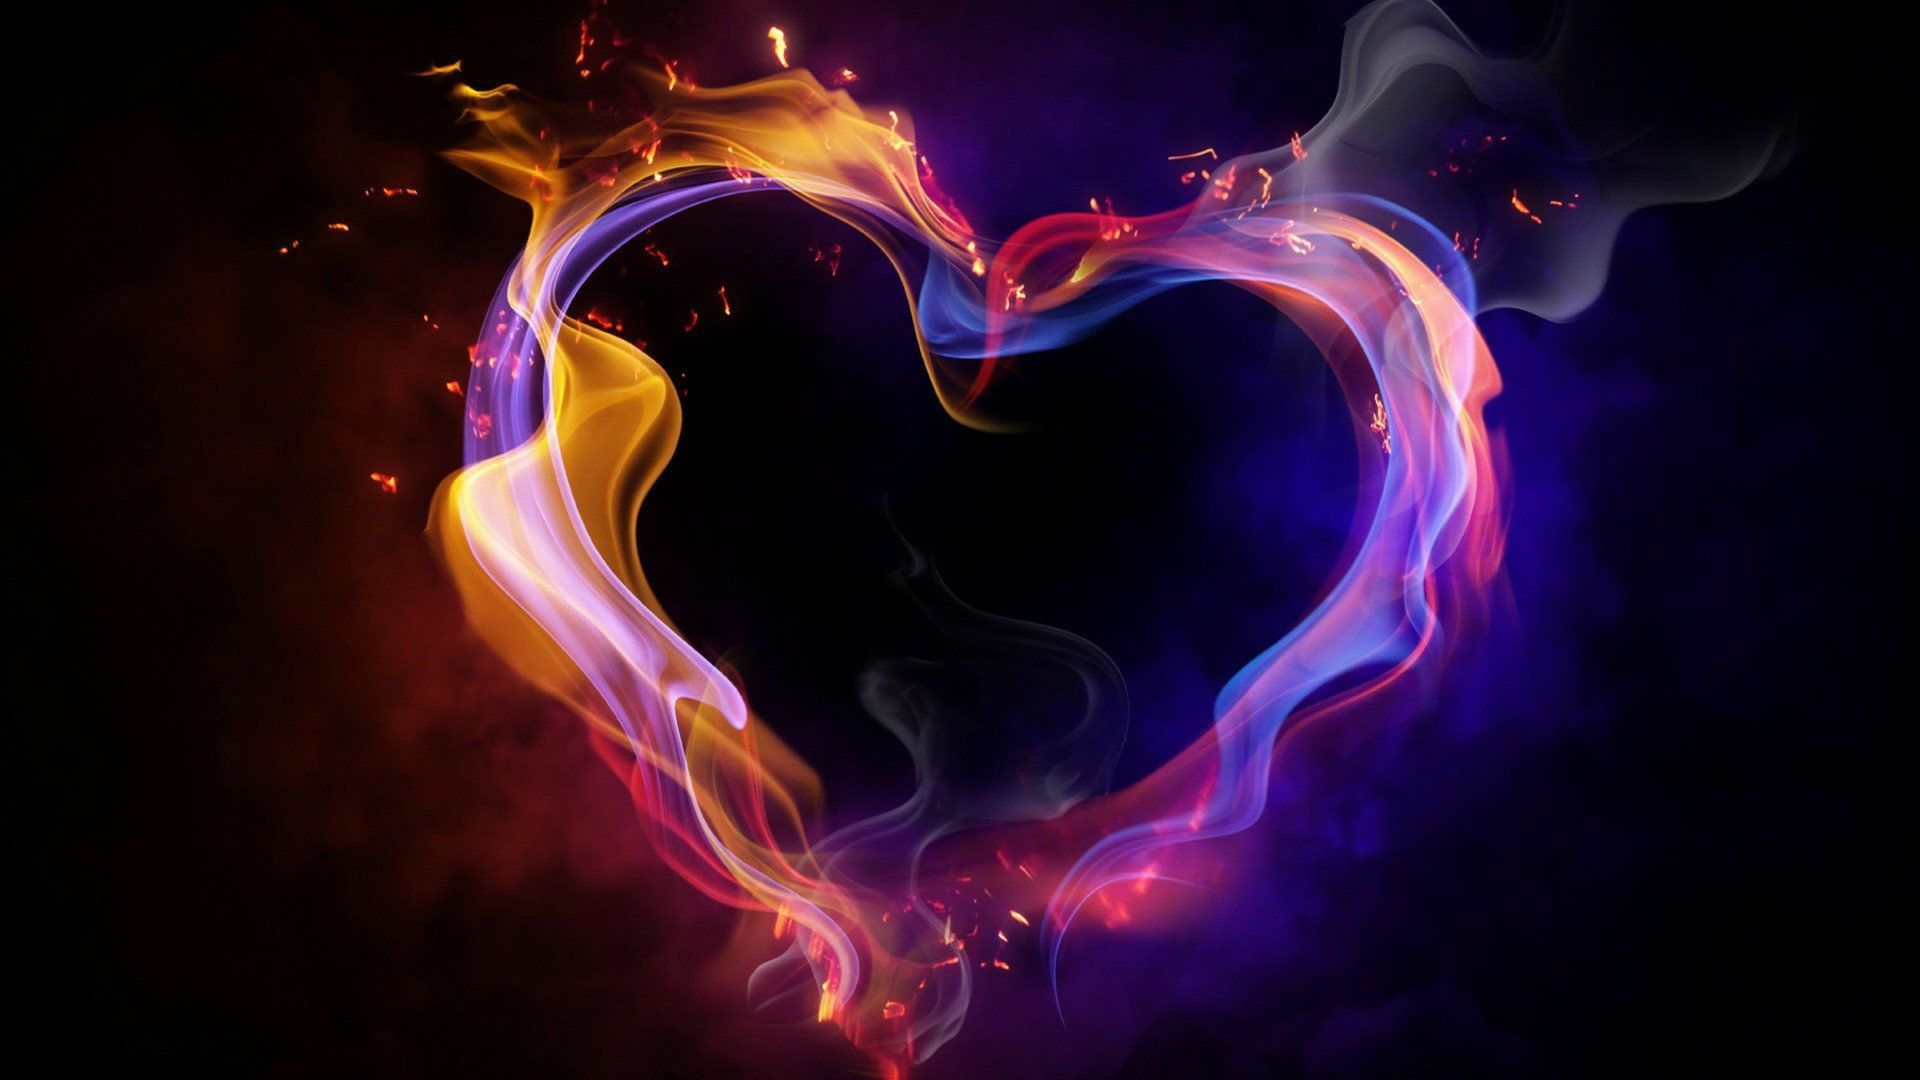 cool heart backgrounds | 1920x1080 hd cool color abstract heart